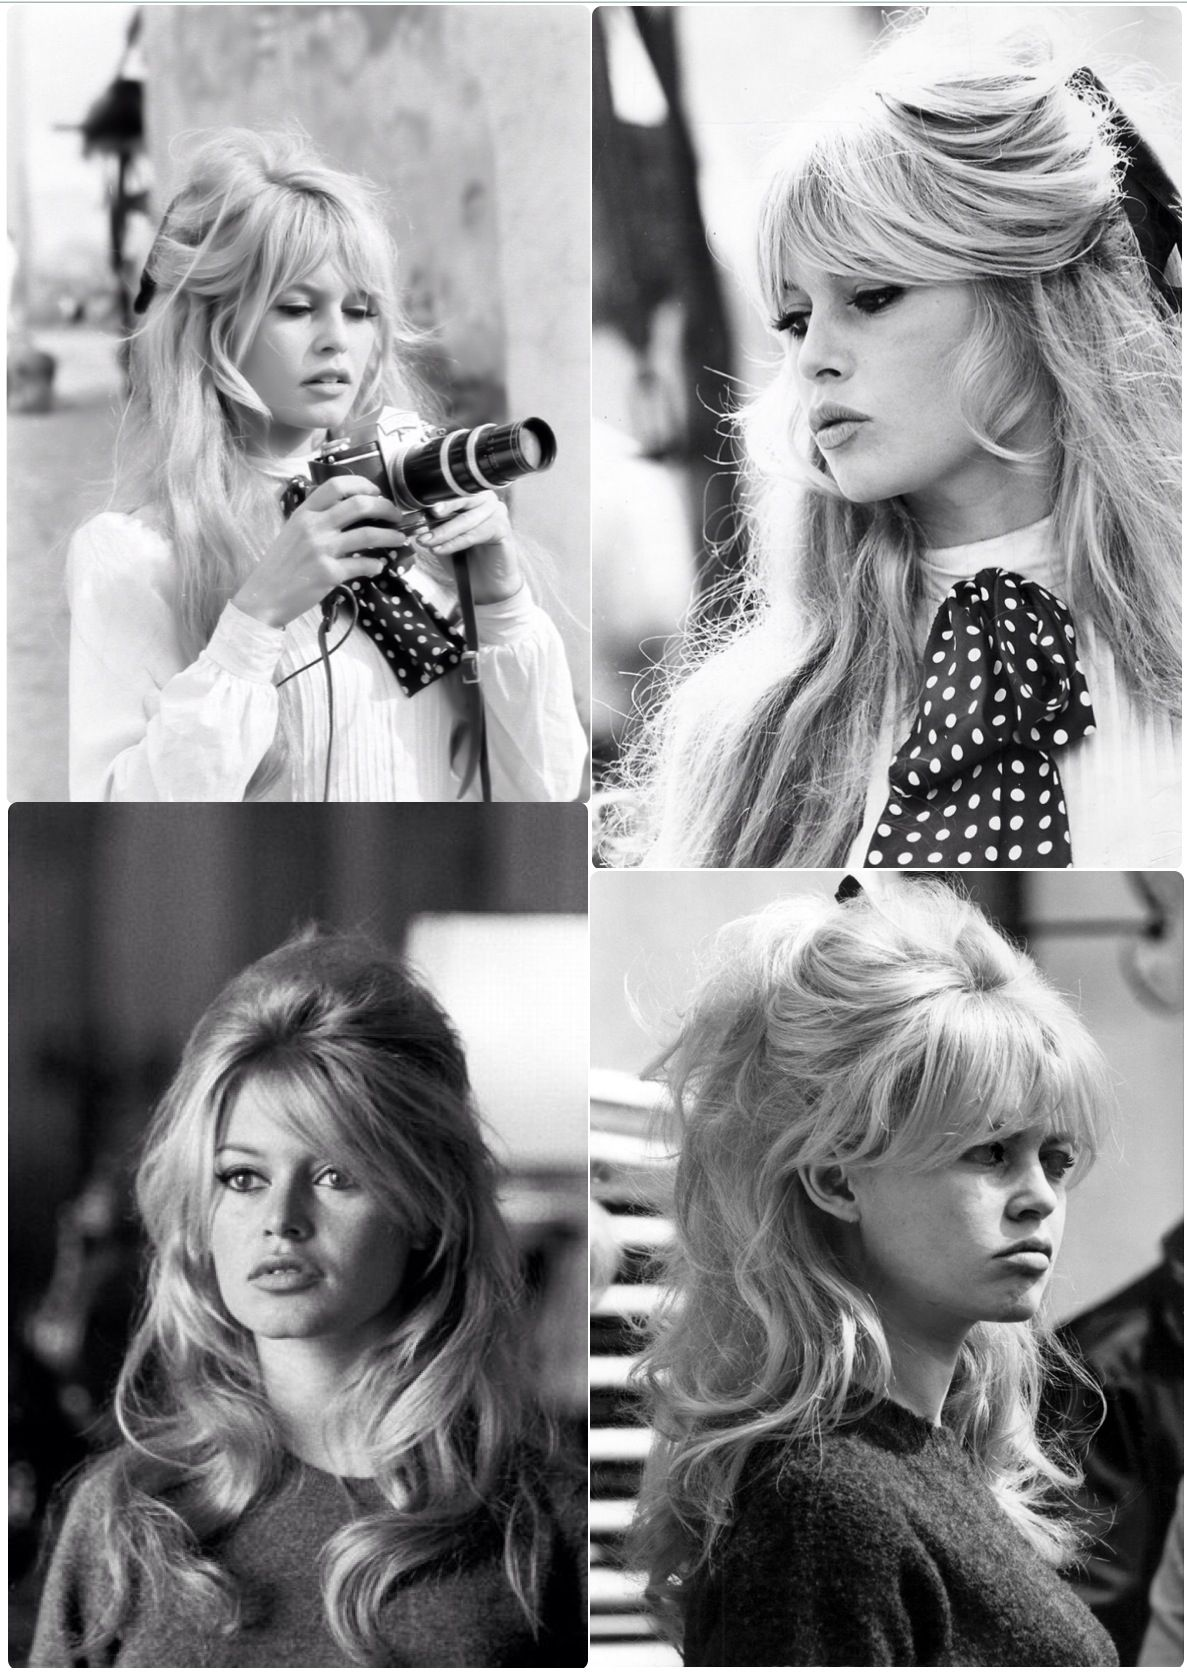 Brigitte Bardot S Hair Classic Half Up Half Down Bouffant Bardot Hair Brigitte Bardot Hair Bouffant Hair